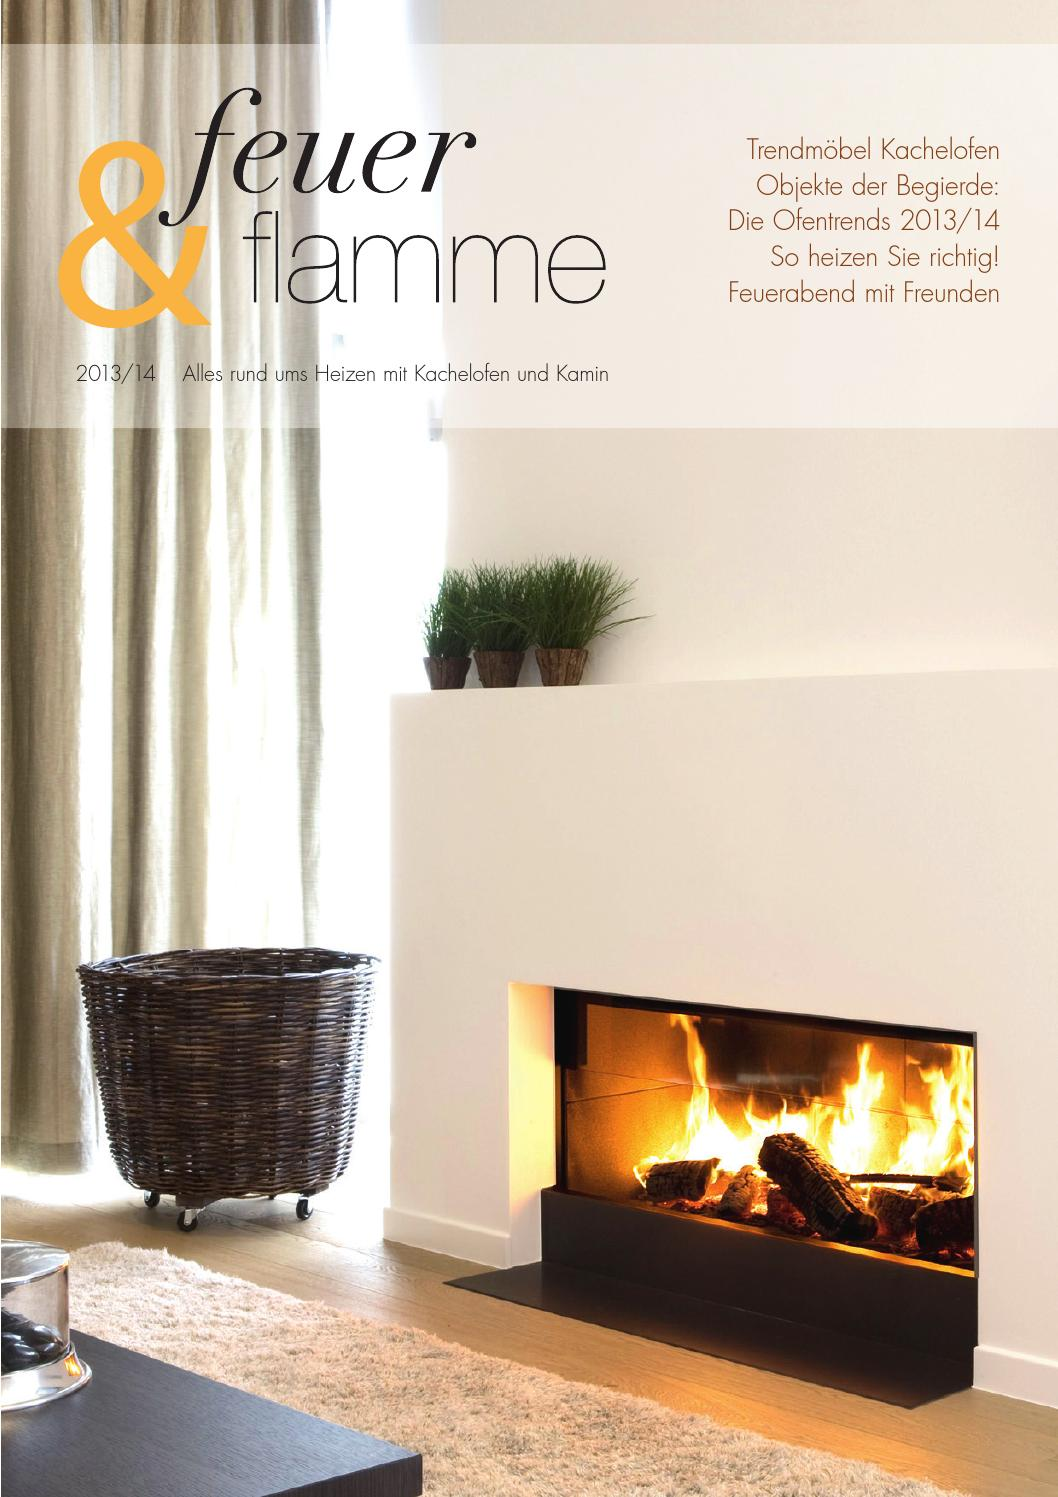 feuer flamme 2013 14 by impactmedia issuu. Black Bedroom Furniture Sets. Home Design Ideas